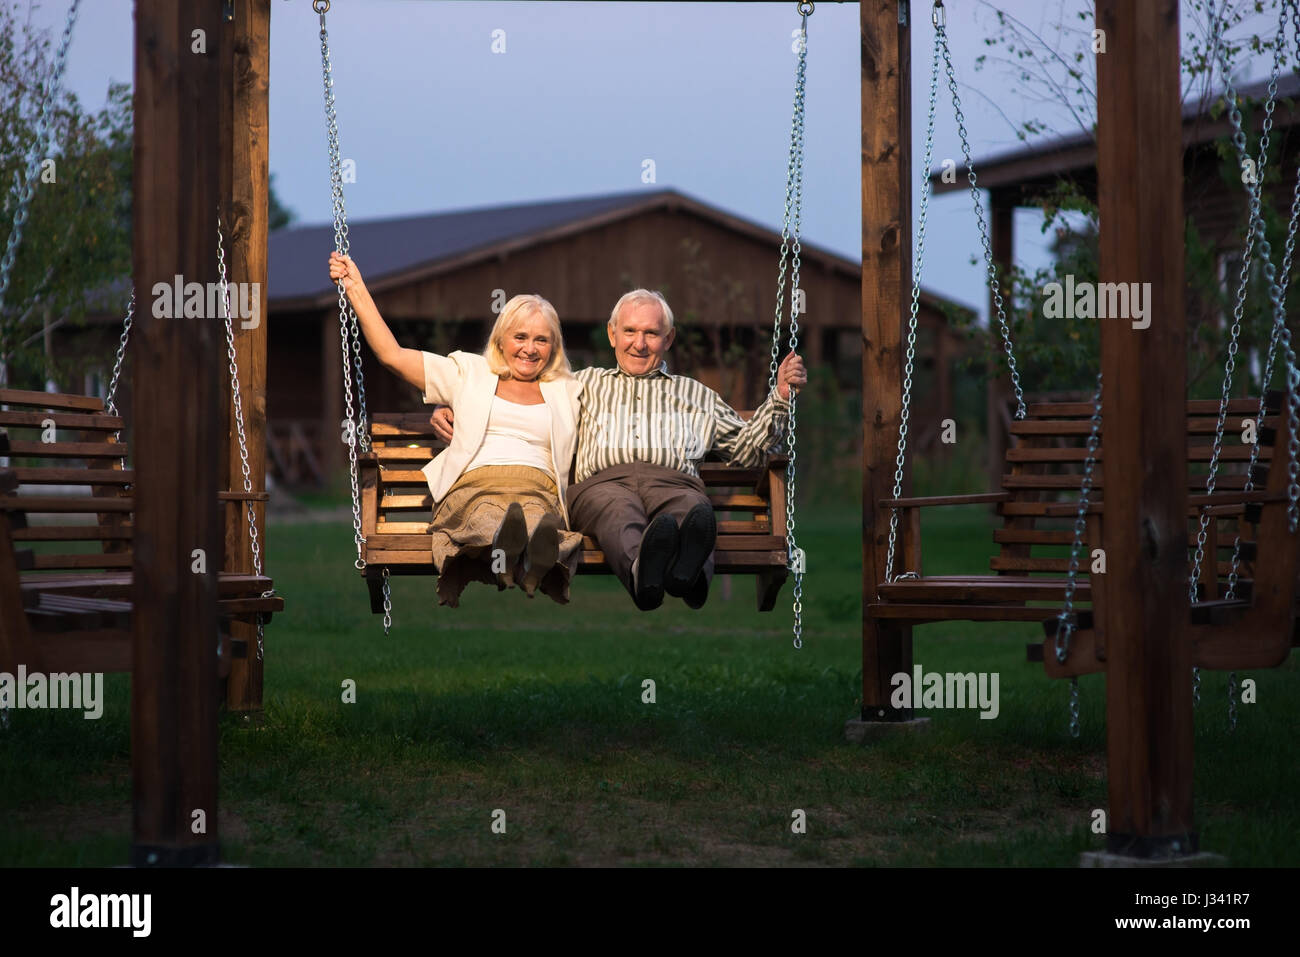 swing chair thailand fishing makers old couple stock photos and